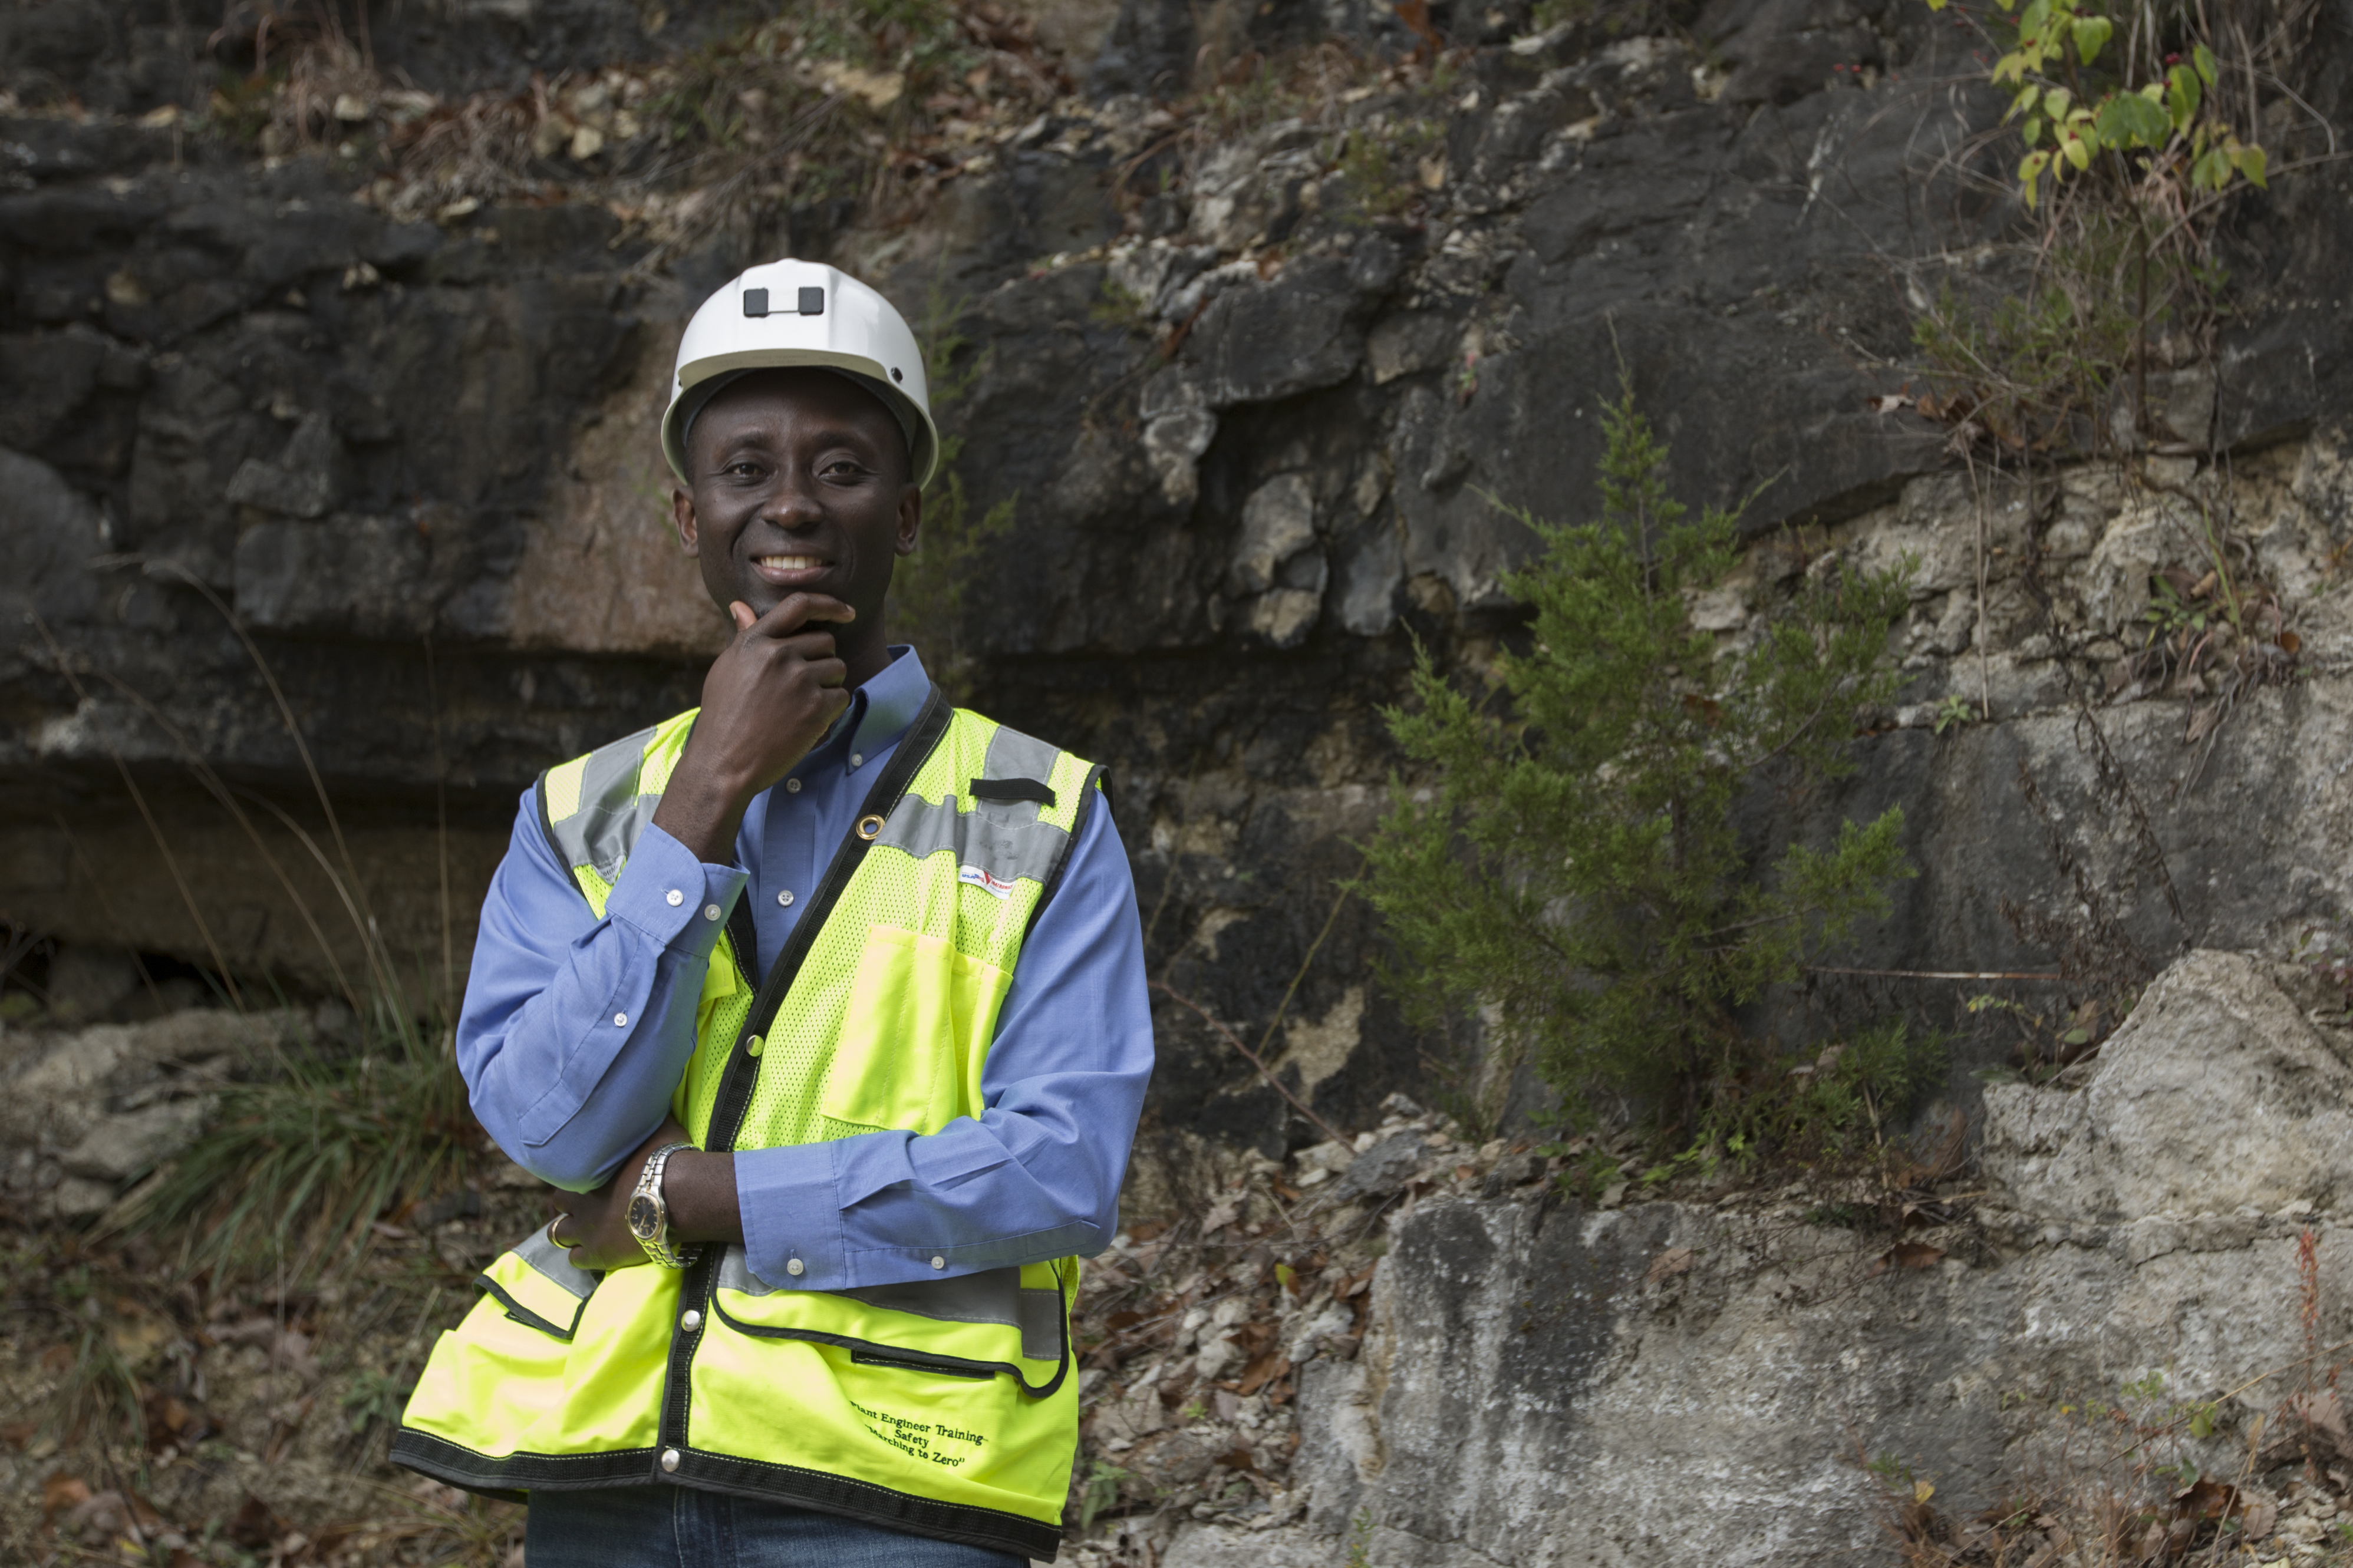 Missouri S&T professor Kwame Awuah-Offei spent a year and a half in Washington, helping the Securities and Exchange Commission write proposed new mining regulations. Photo By Sam O'Keefe/Missouri S&T